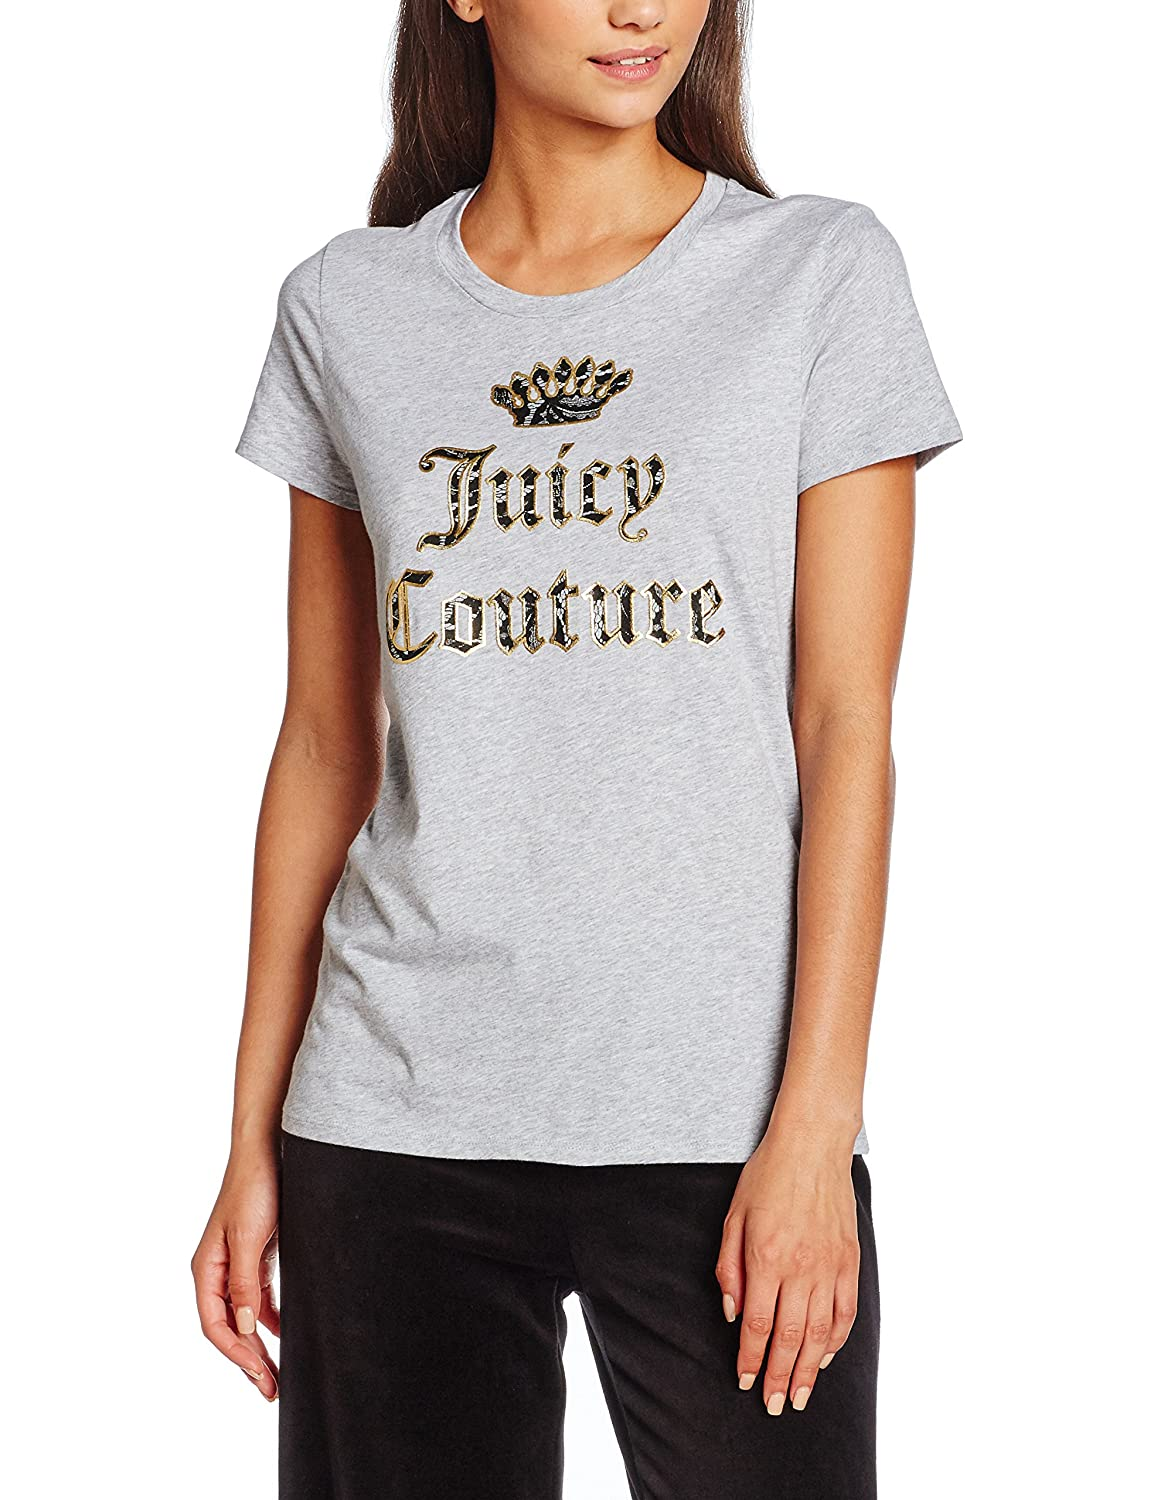 Juicy Couture Damen T-Shirt Knt Lace Graphic Tee